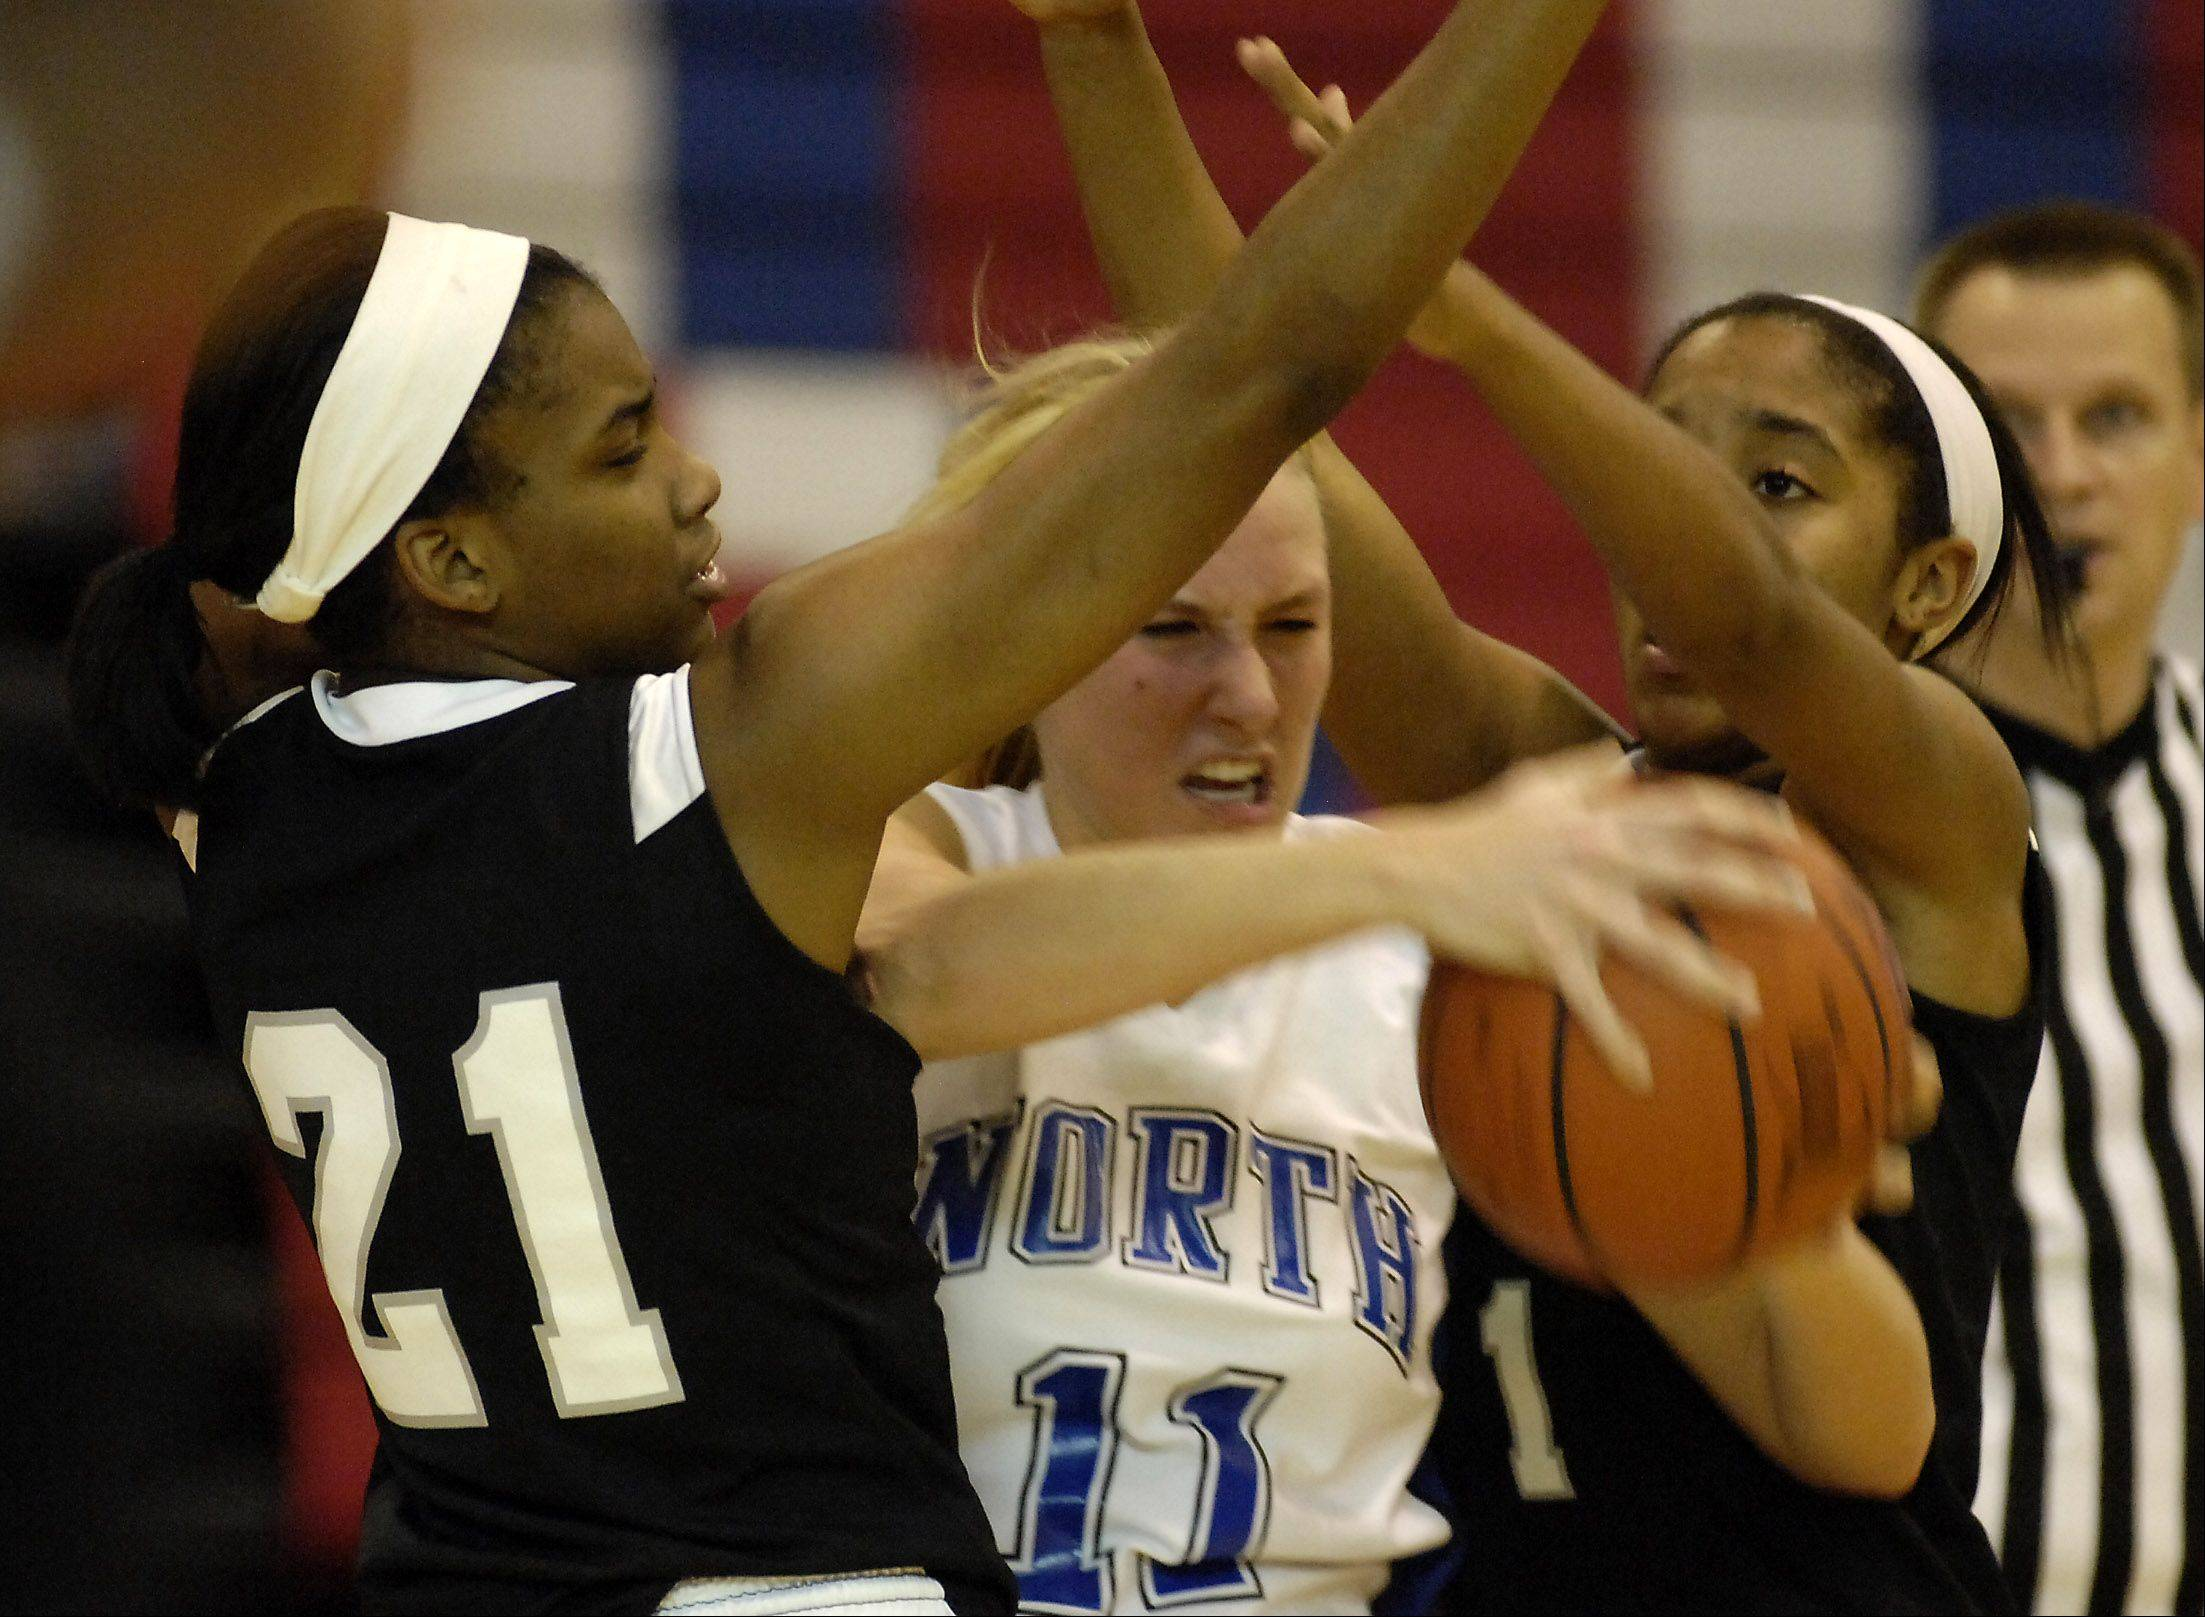 St. Charles North's Megan Booe, center, tries to pass the ball with Fenwick's Maya Garland,left, and Jade Owens defending during Monday's basketball game in Carpentersville.